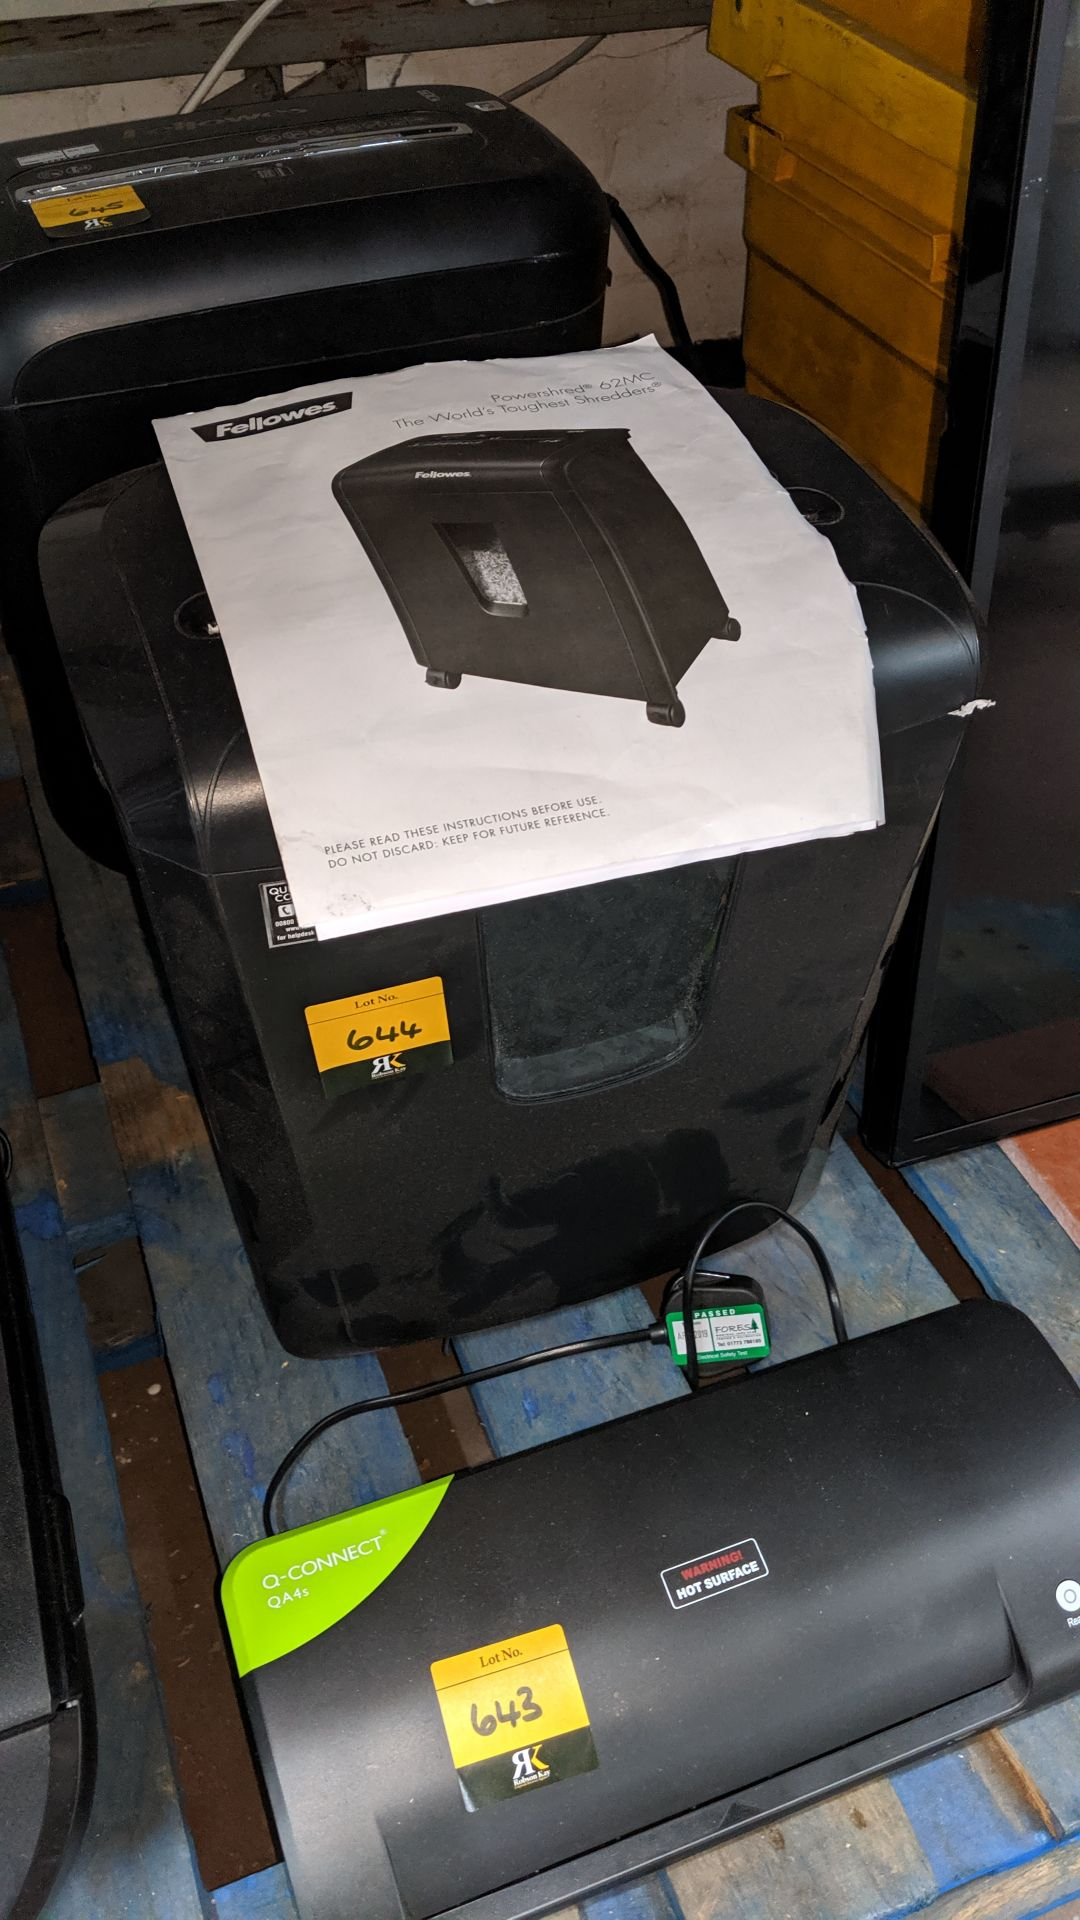 Lot 644 - Fellowes paper shredder. This is one of a large number of lots used/owned by One To One (North West)